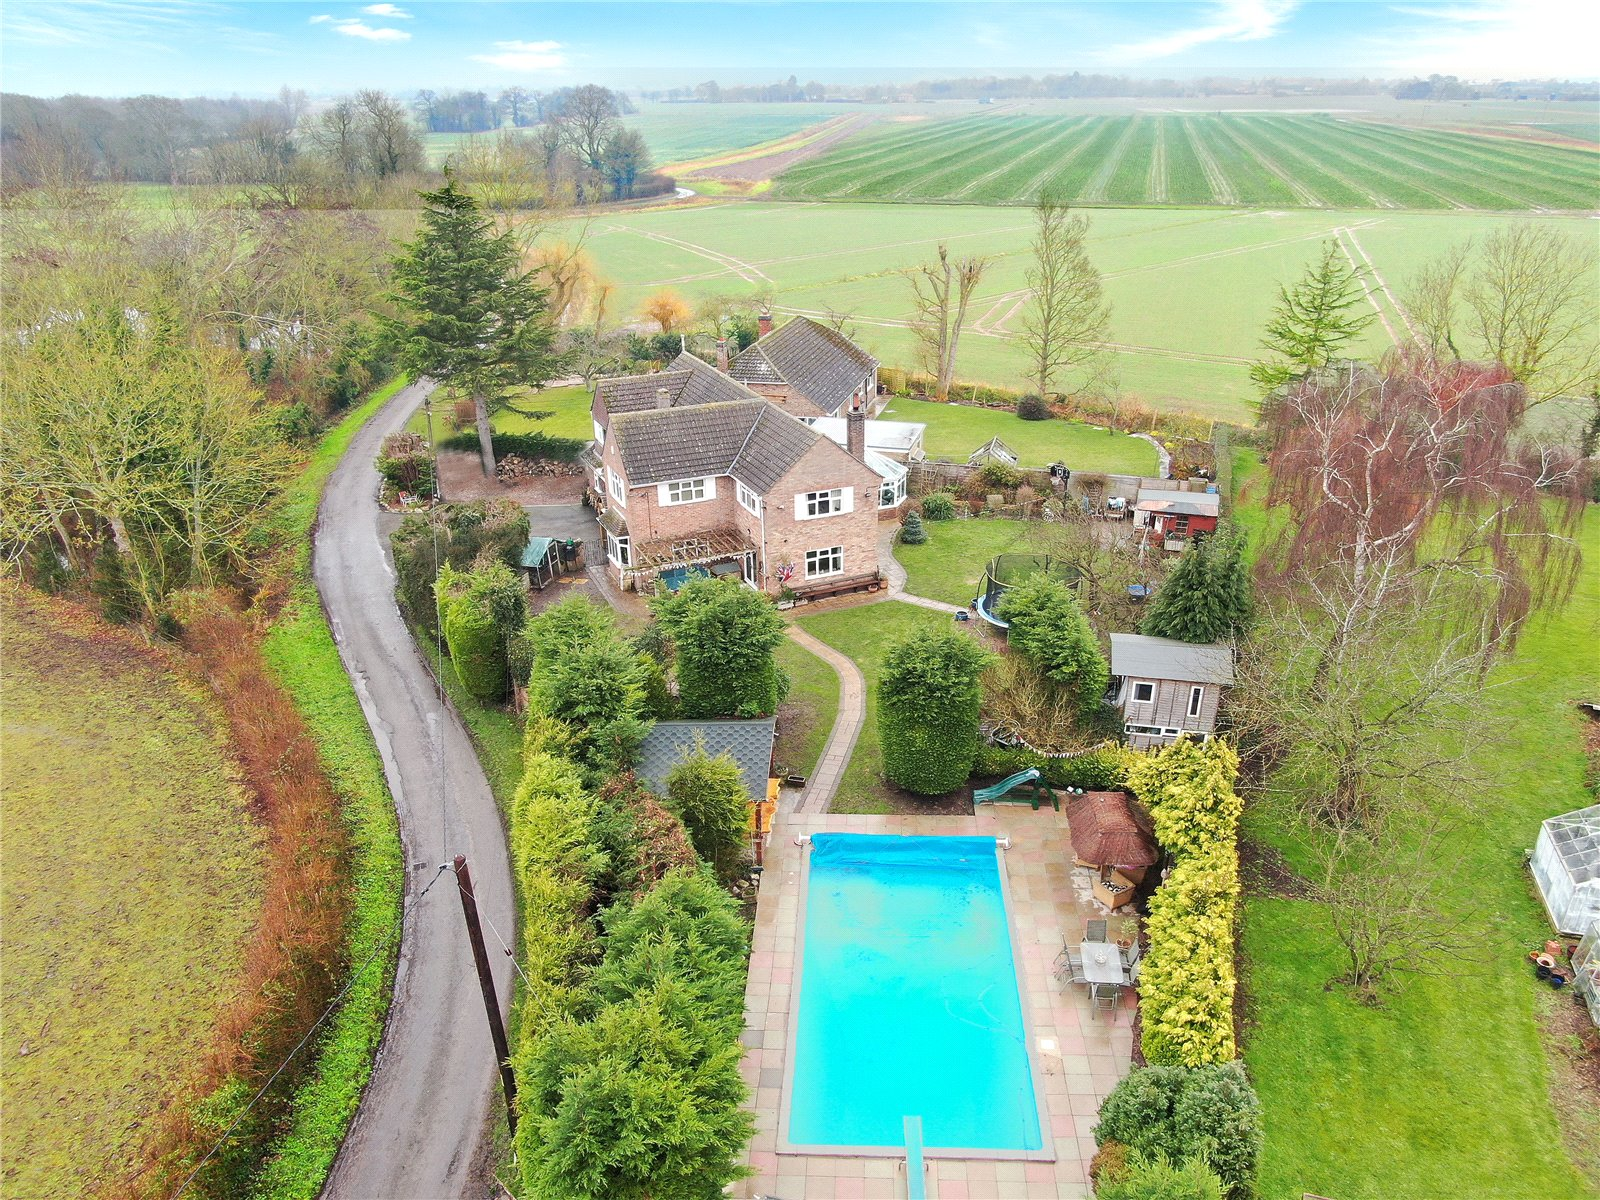 rural country home with swimming pool